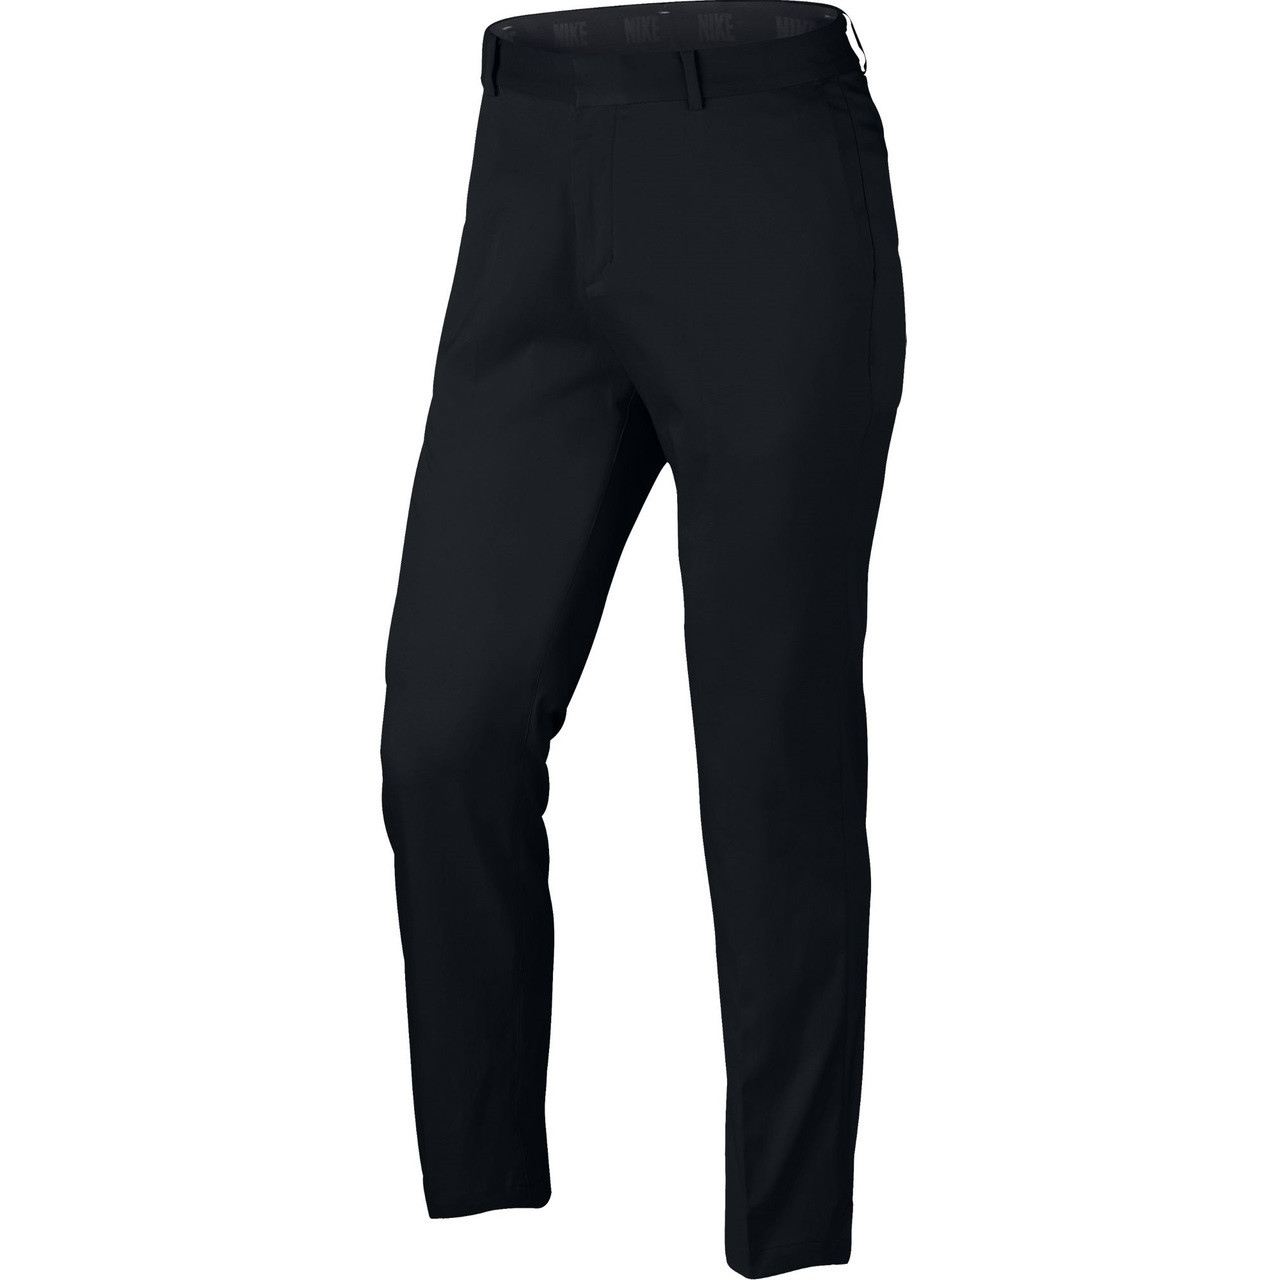 Mens Golf Warehouse Clothing Clearance